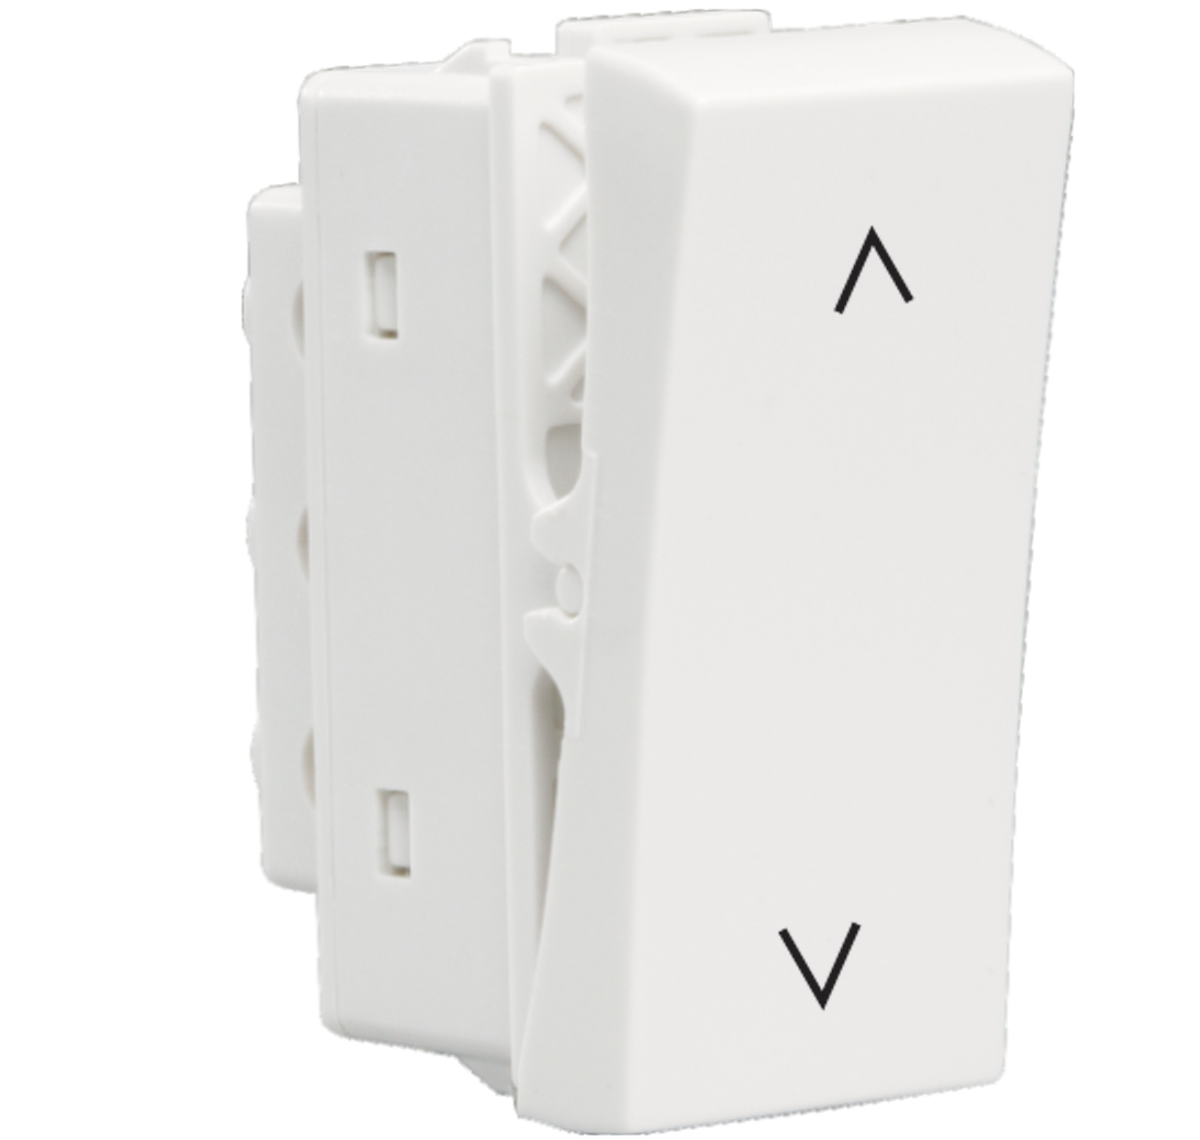 Crabtree - 10 AX two way switch